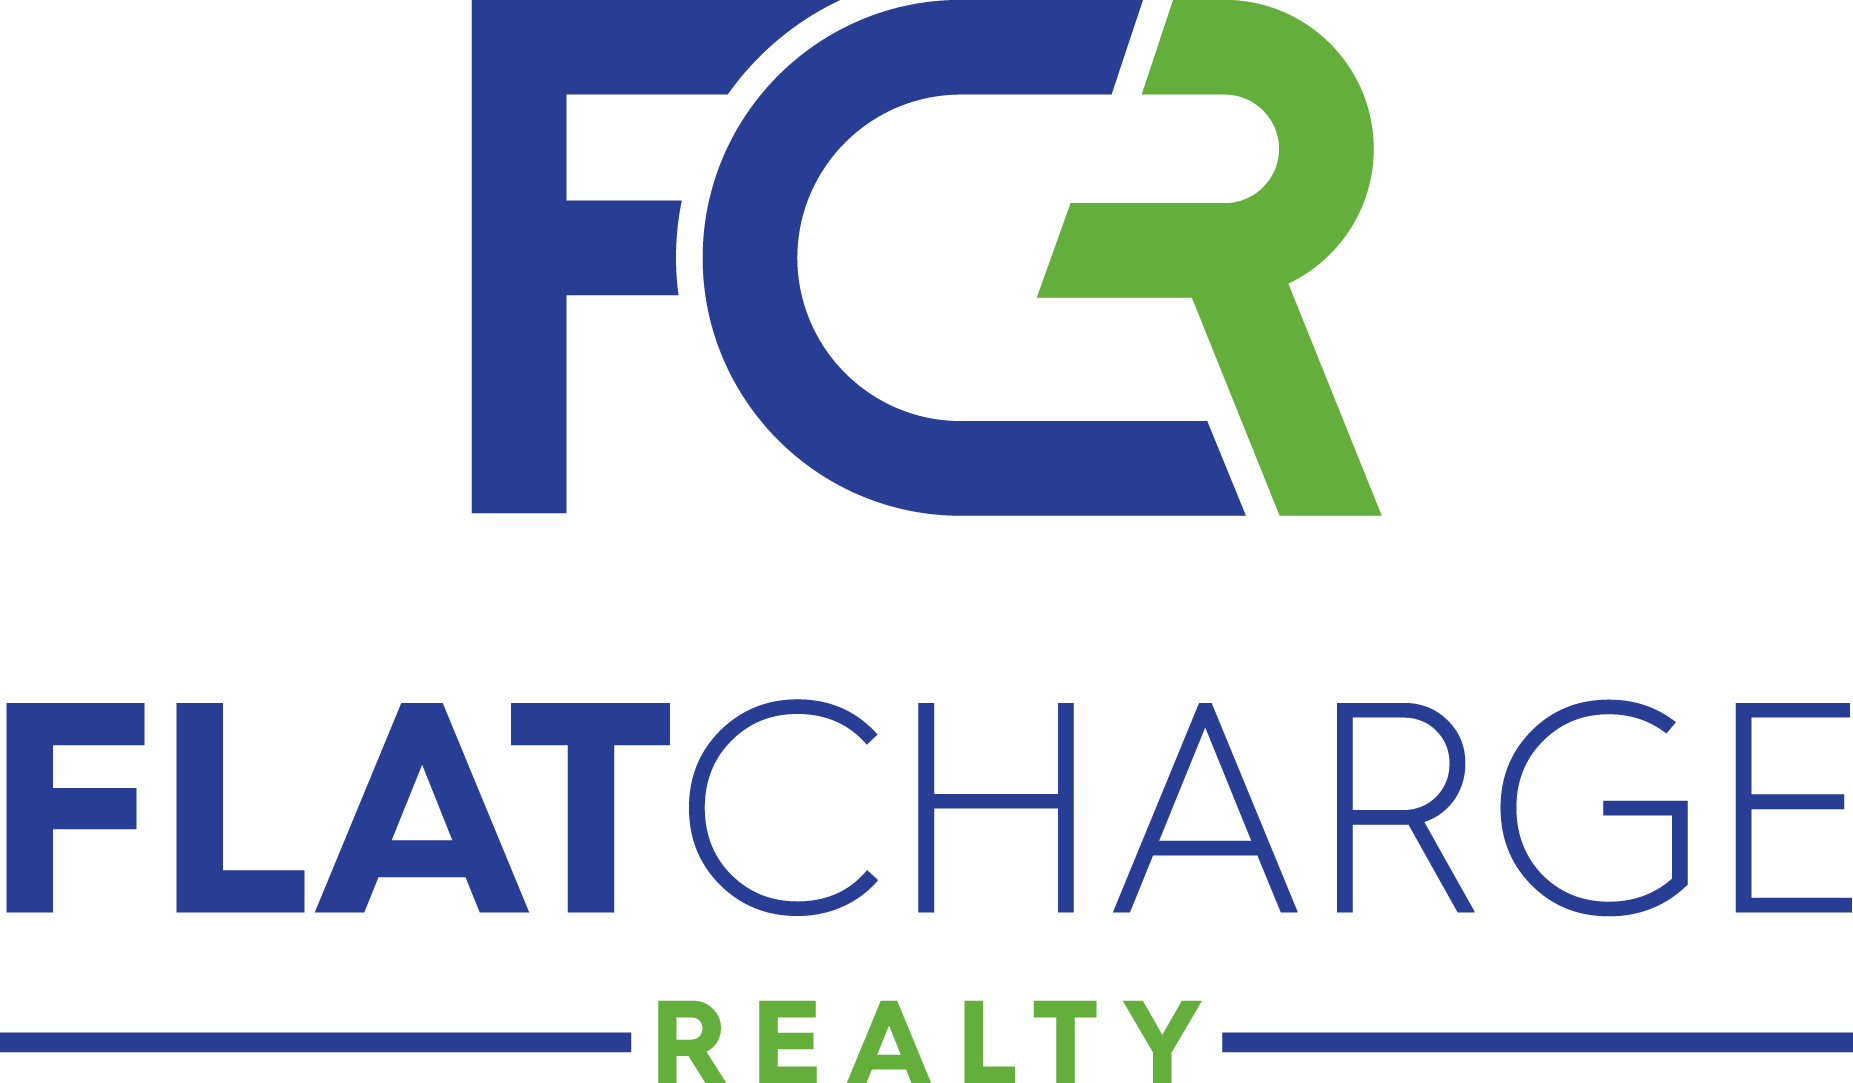 Flat Charge Realty logo